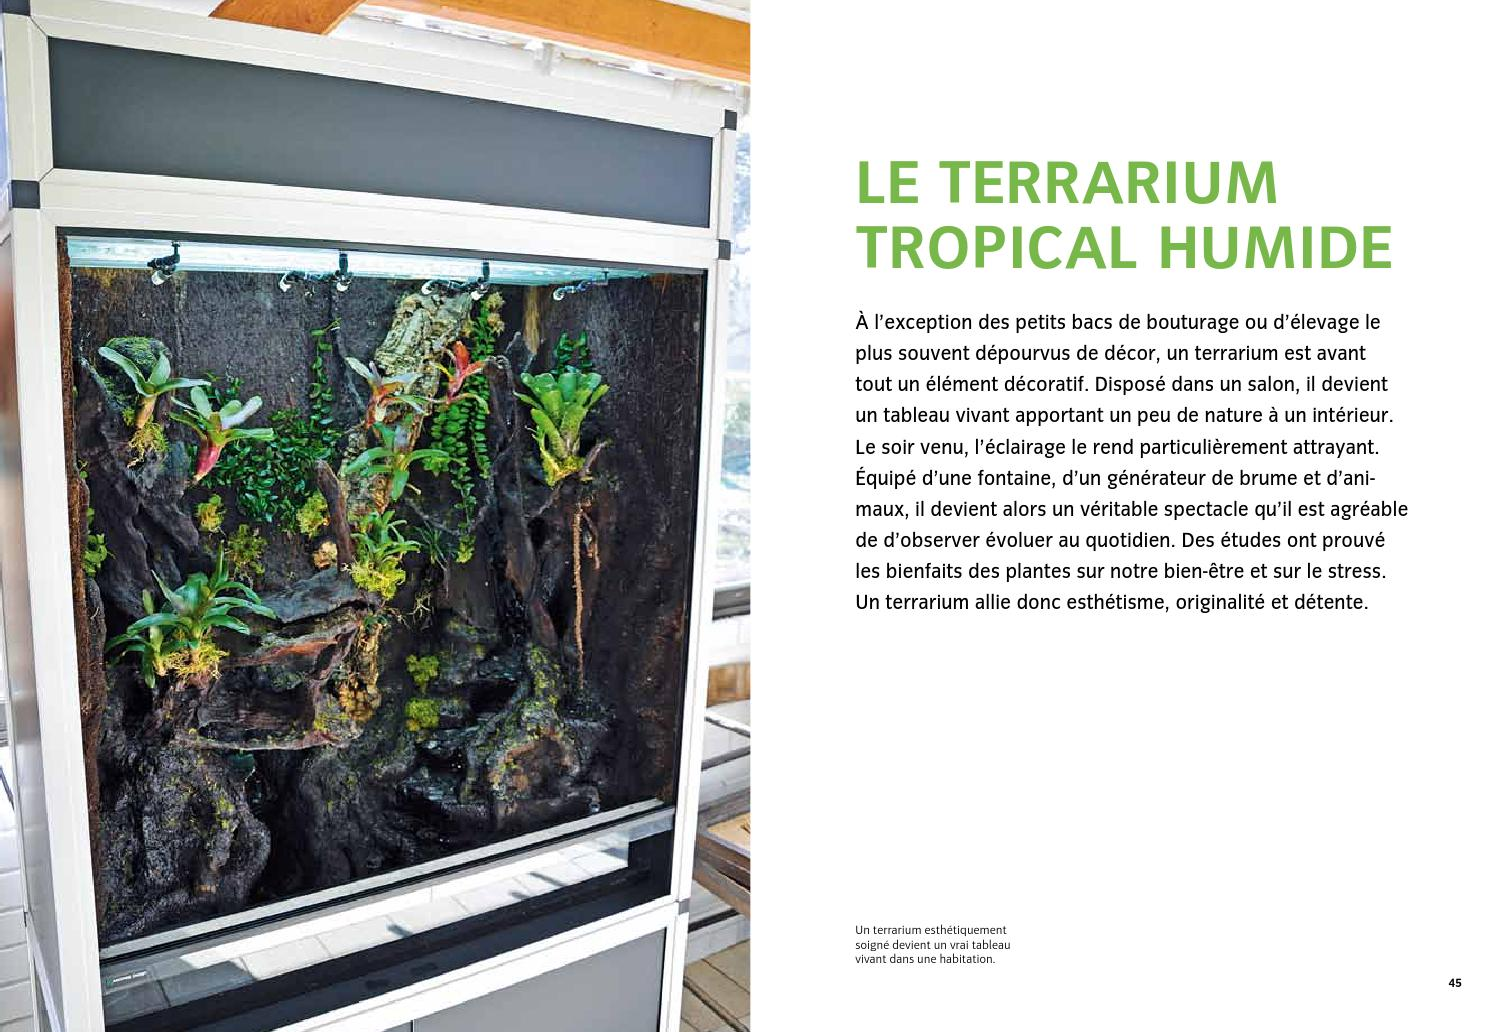 extrait cr er un terrarium tropical humide ditions ulmer by ditions ulmer issuu. Black Bedroom Furniture Sets. Home Design Ideas